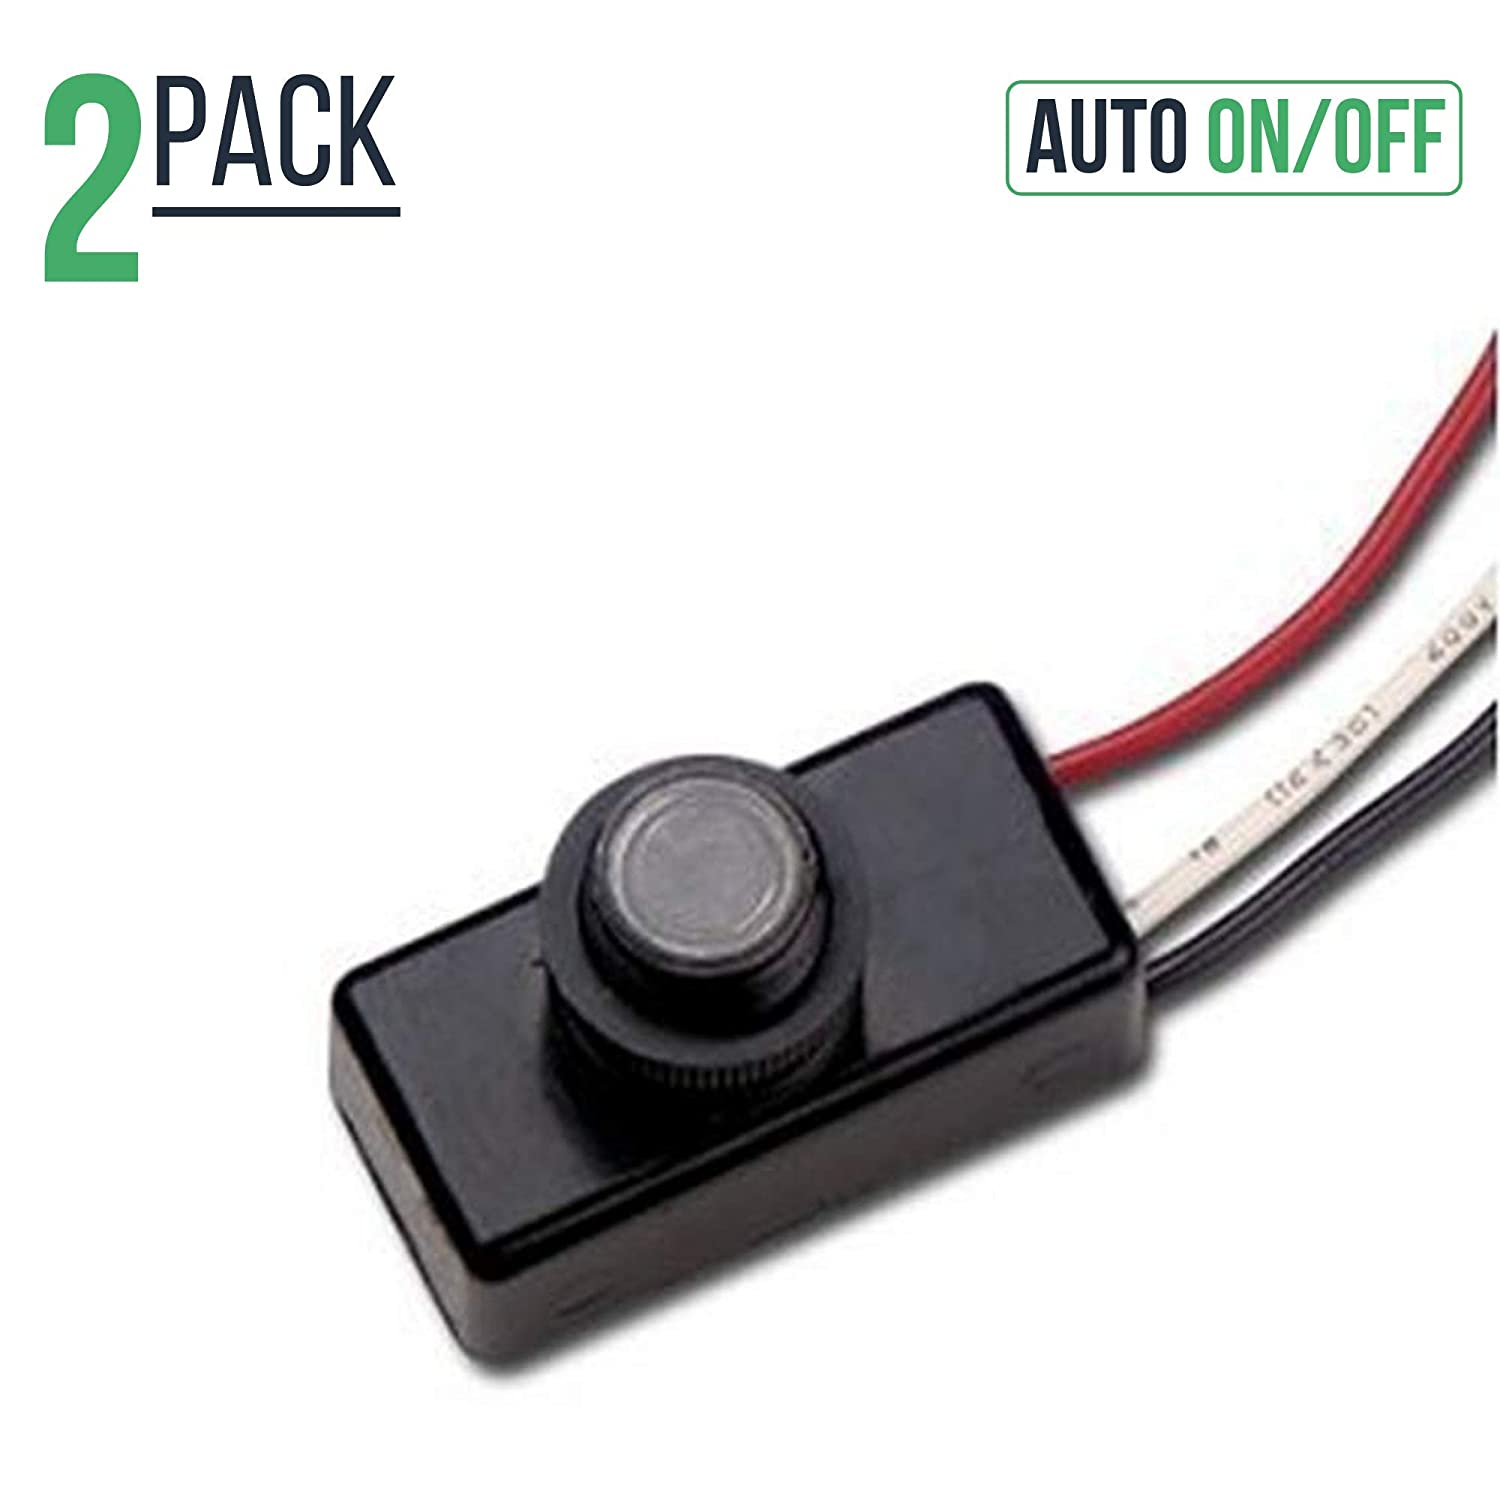 120 Volt Dusk To Dawn Photocell Photoeye Light Sensor Switch Auto 5 Best Images Of Wiring Diagram On Off Use With Fluorescent Incandescent Or Led Bulbs Sockets